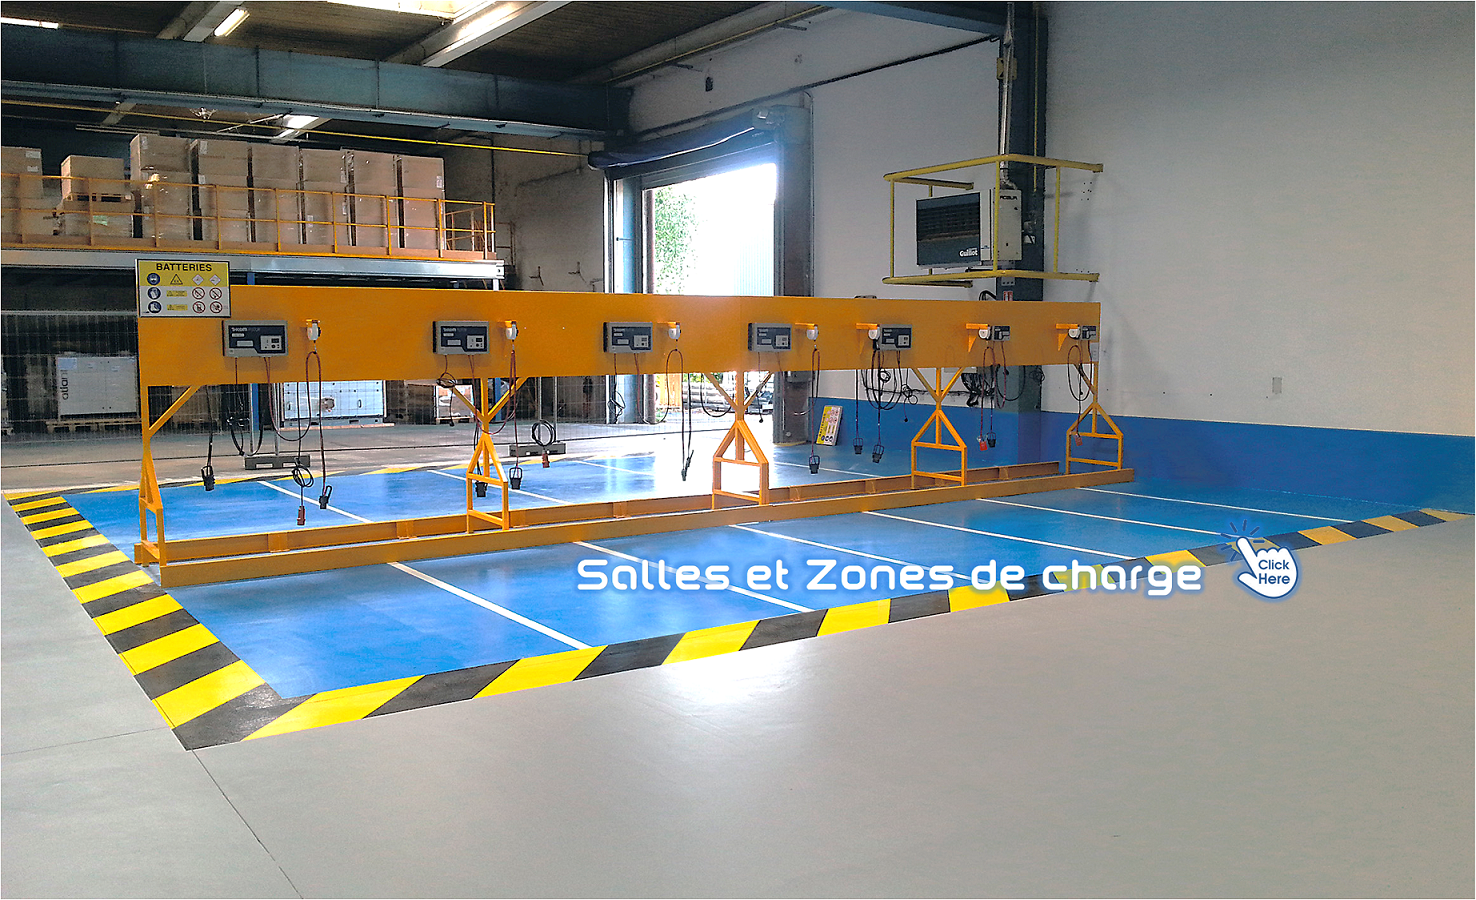 Zones-de-charge-batteries-industrielles-1